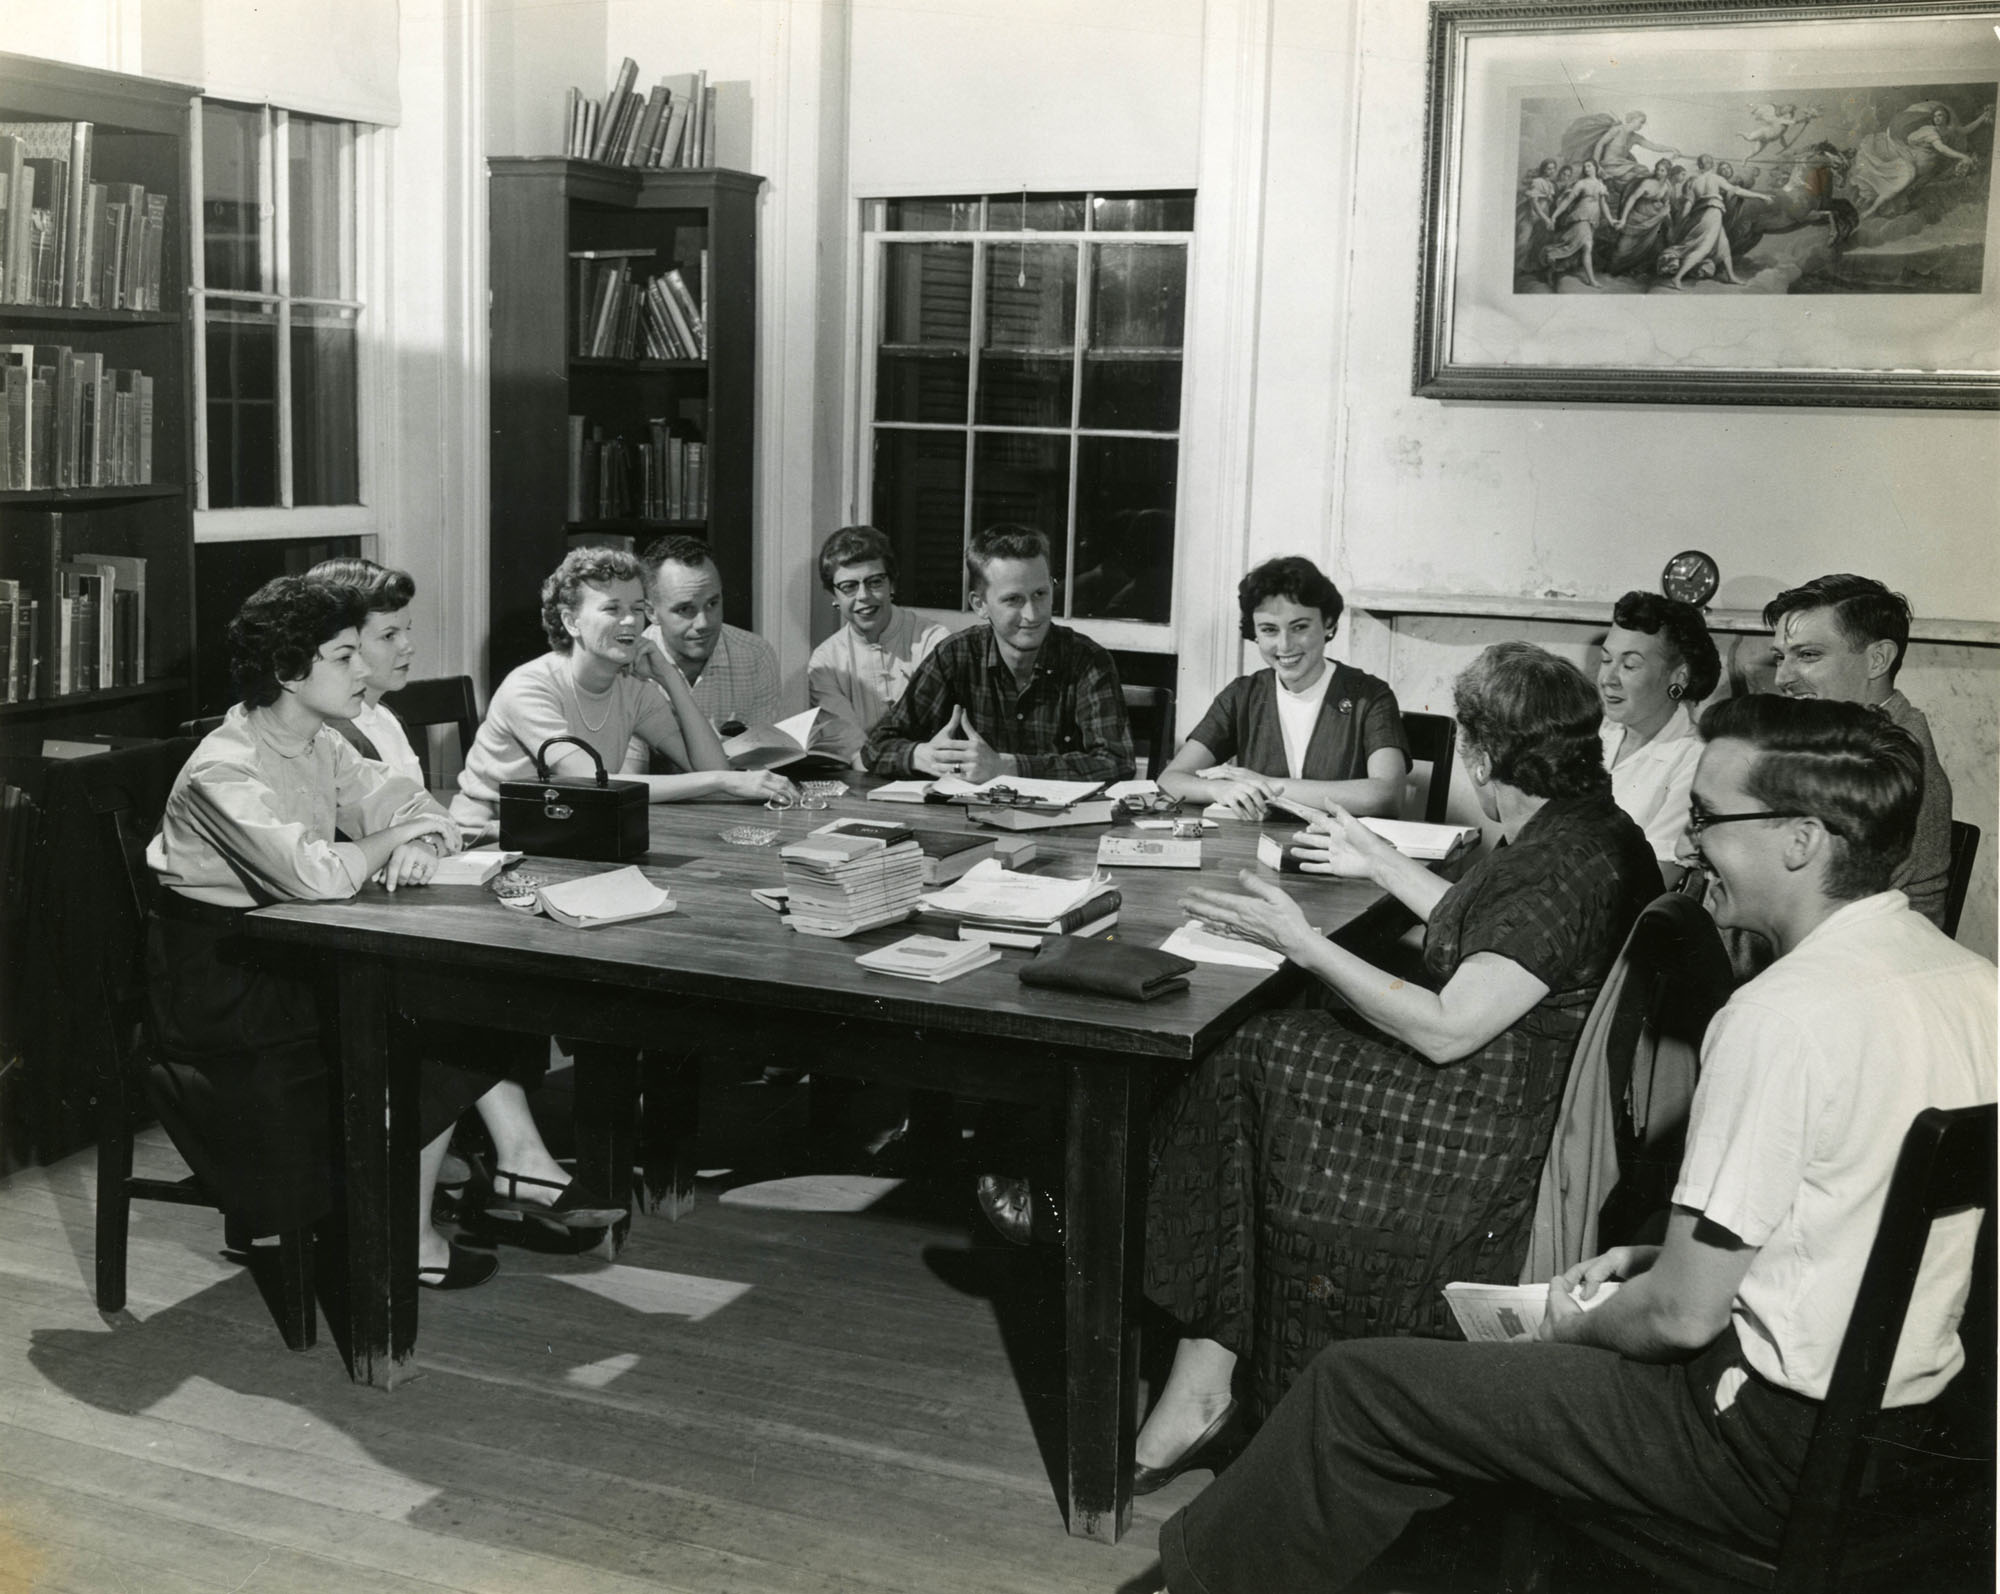 Book discussion at Main Library, 1950s